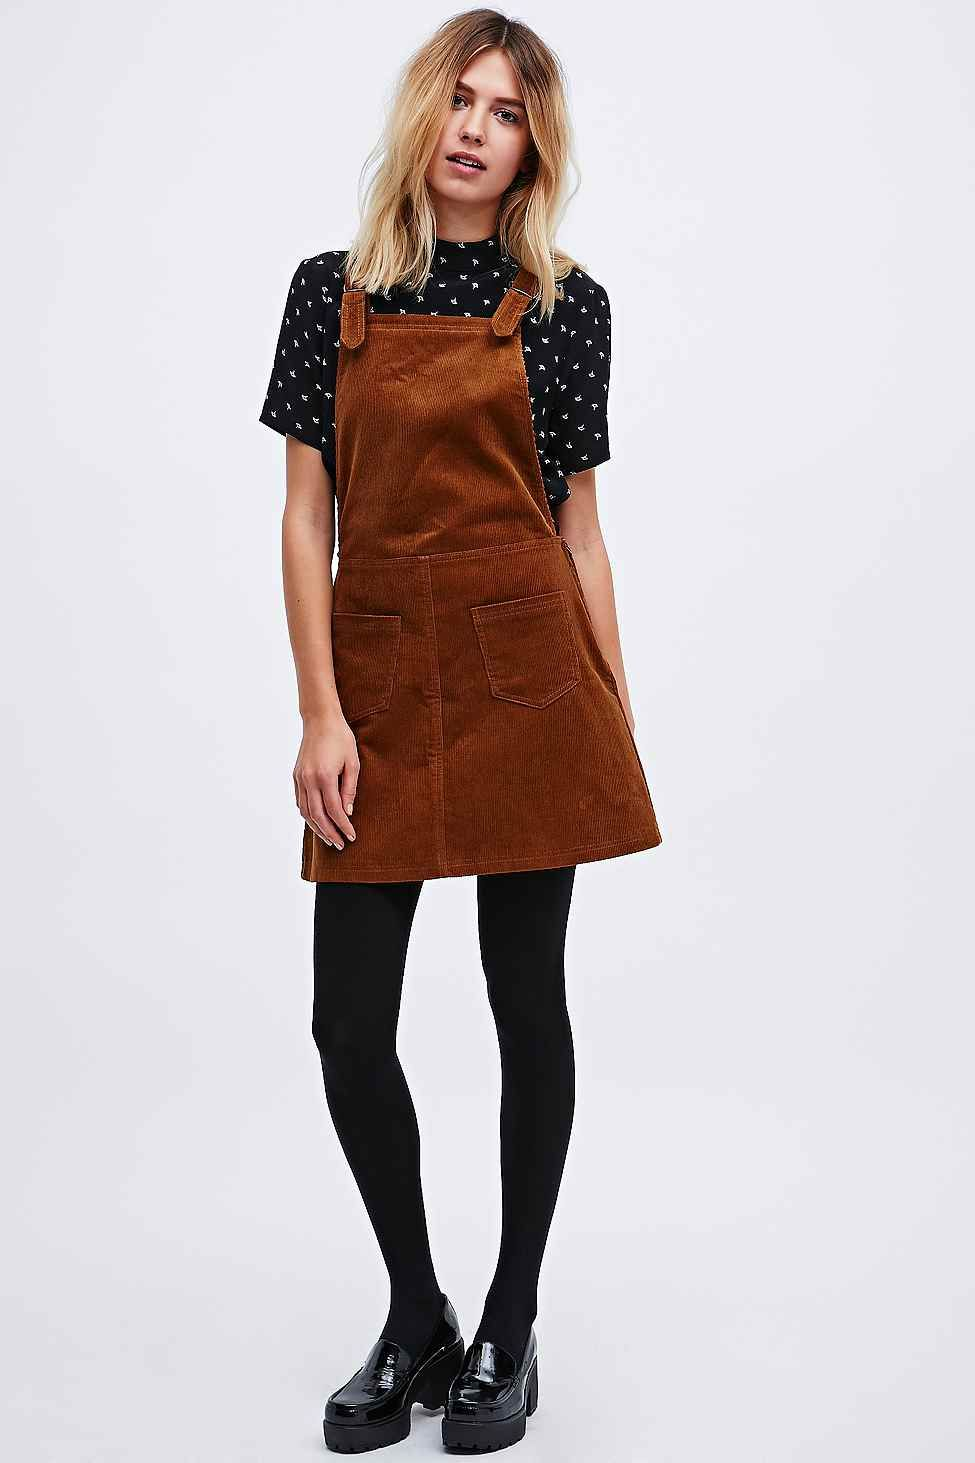 dc42d6926 Cooperative by Urban Outfitters Corduroy Dungaree Dress | Favs ...